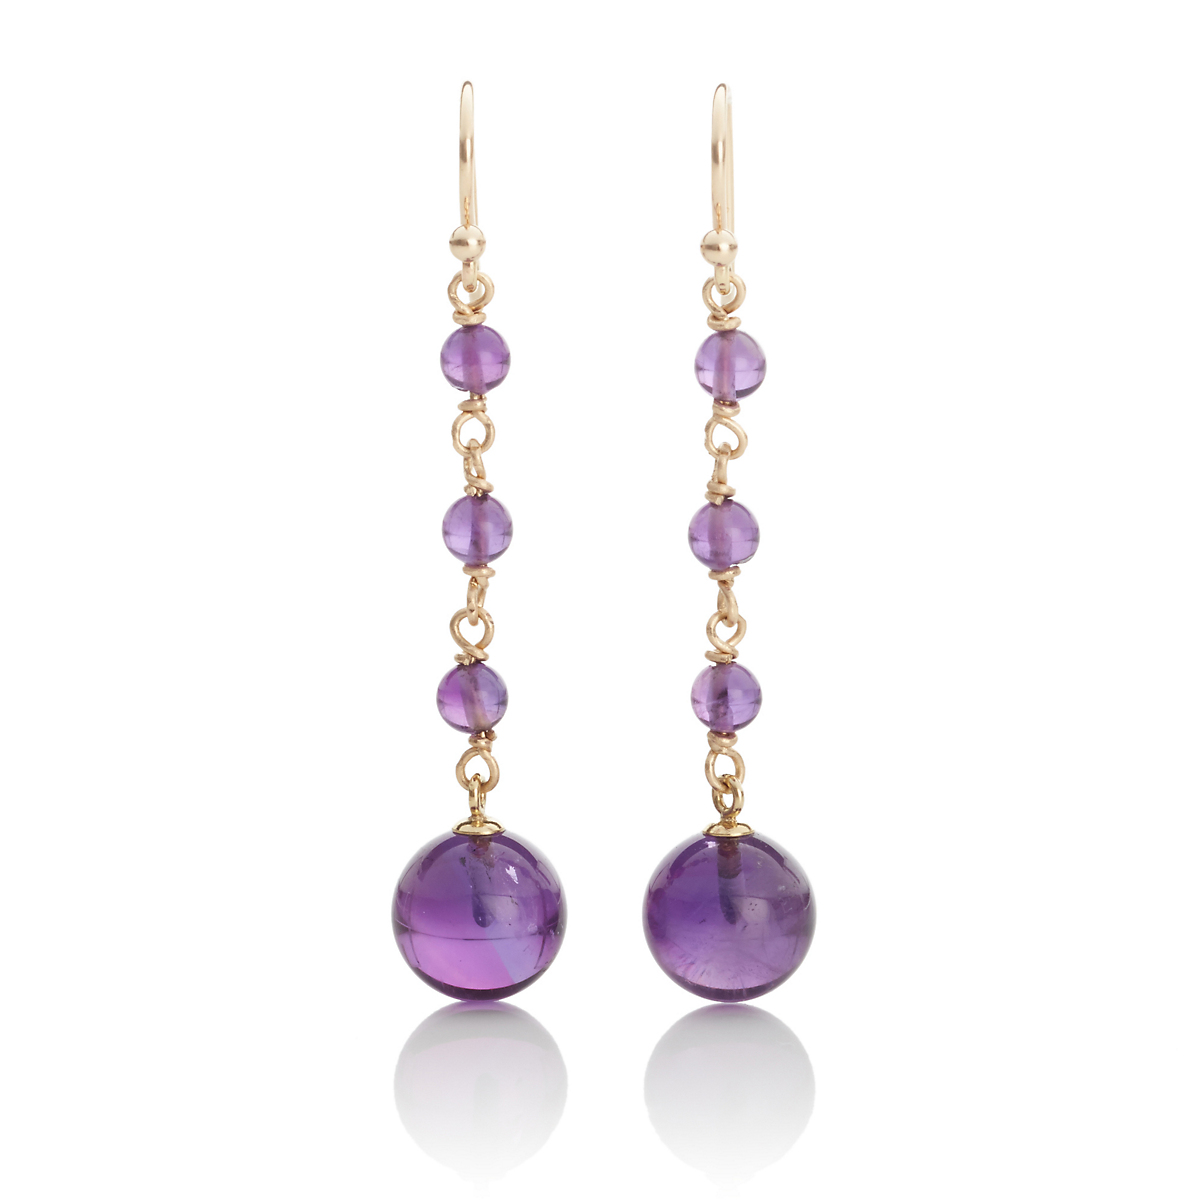 Gump's Amethyst Bead Long Drop Earrings